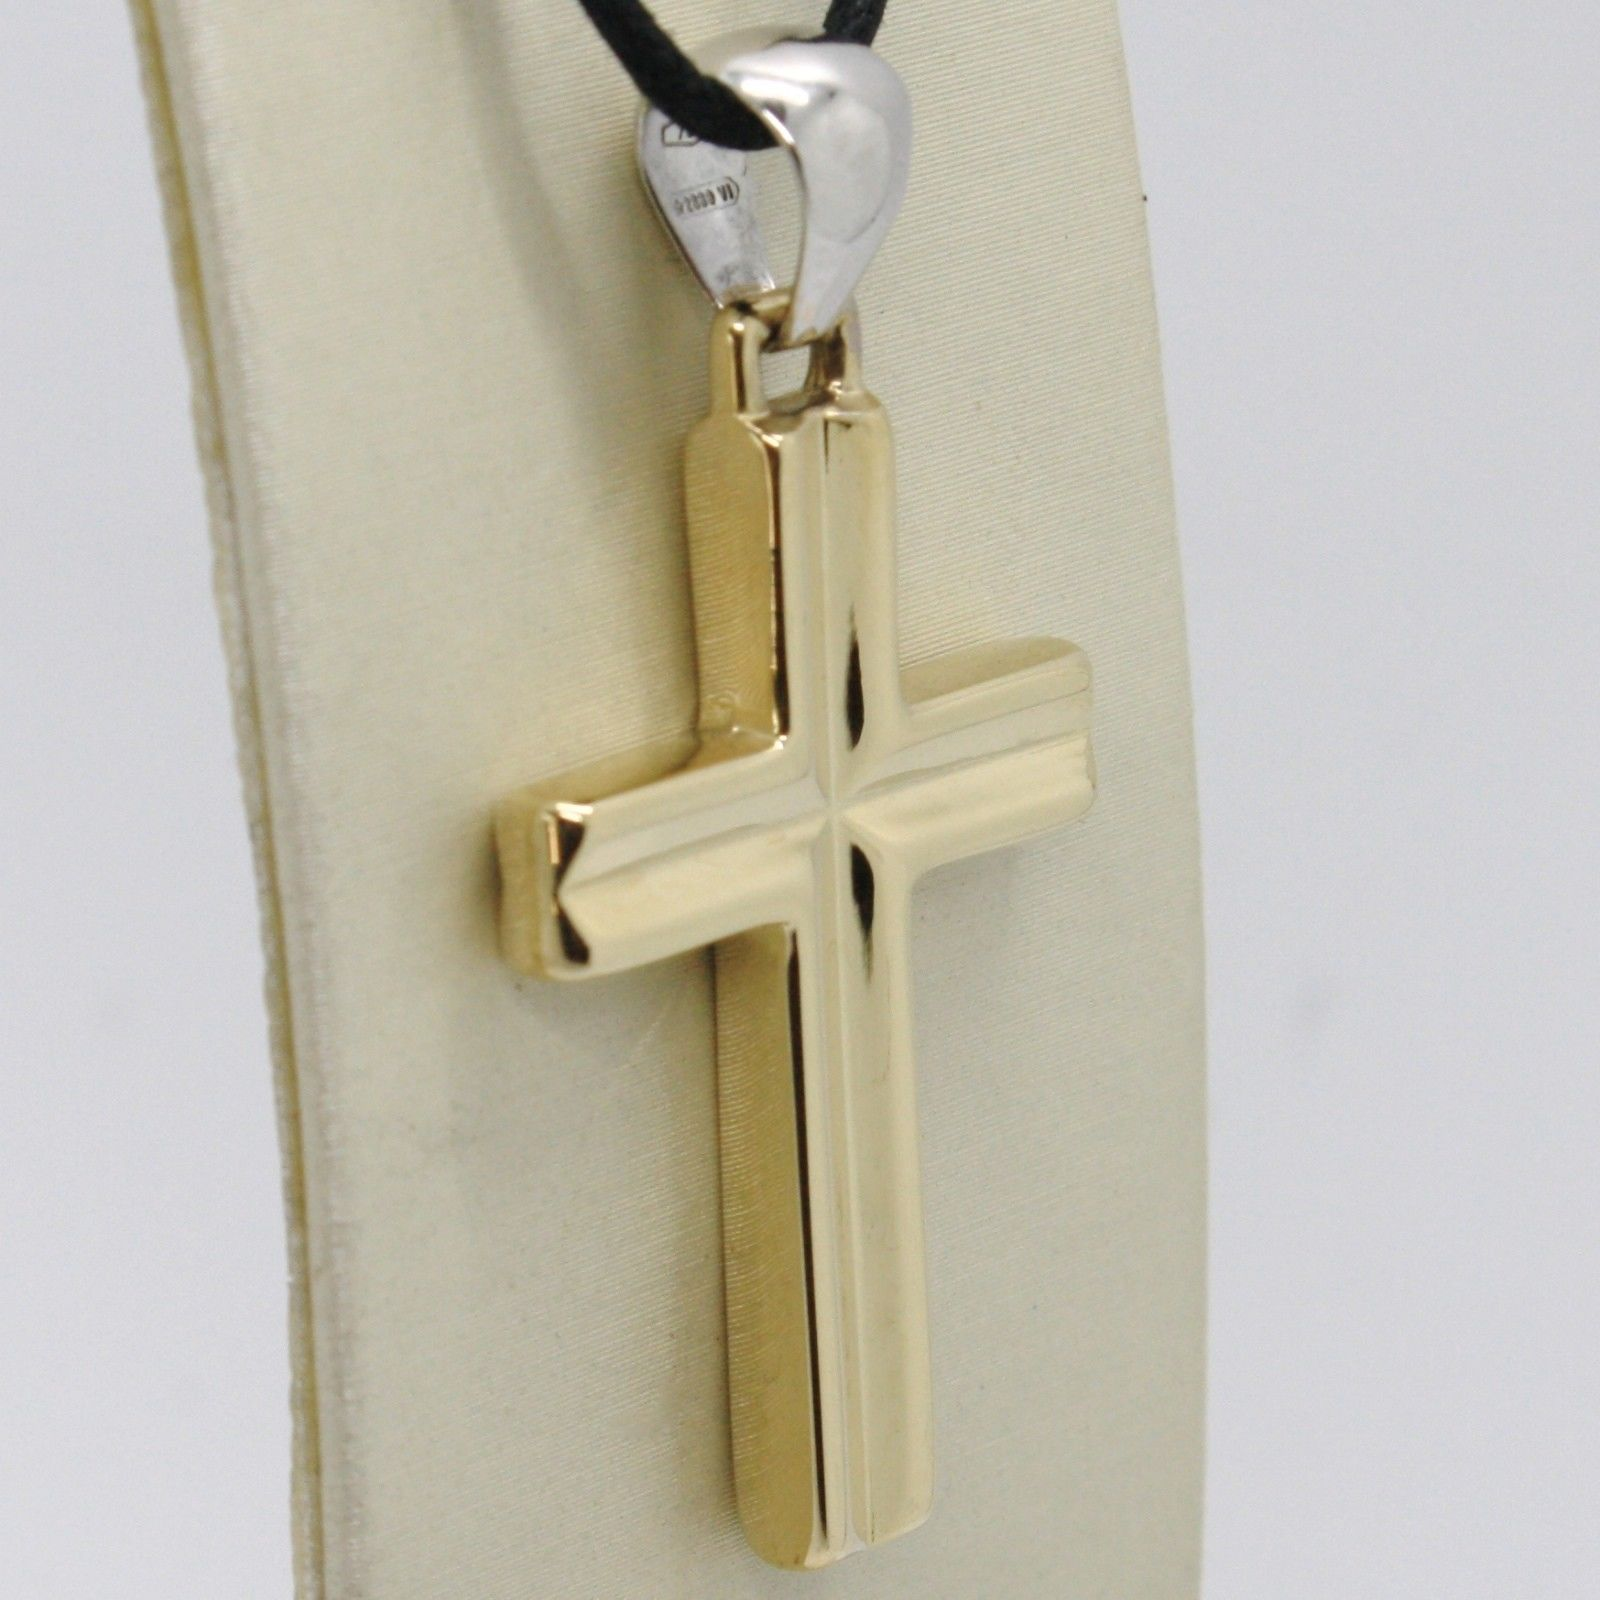 18K YELLOW & WHITE GOLD CROSS PENDANT, SQUARED, 1.6 INCHES, 4.1 CM MADE IN ITALY